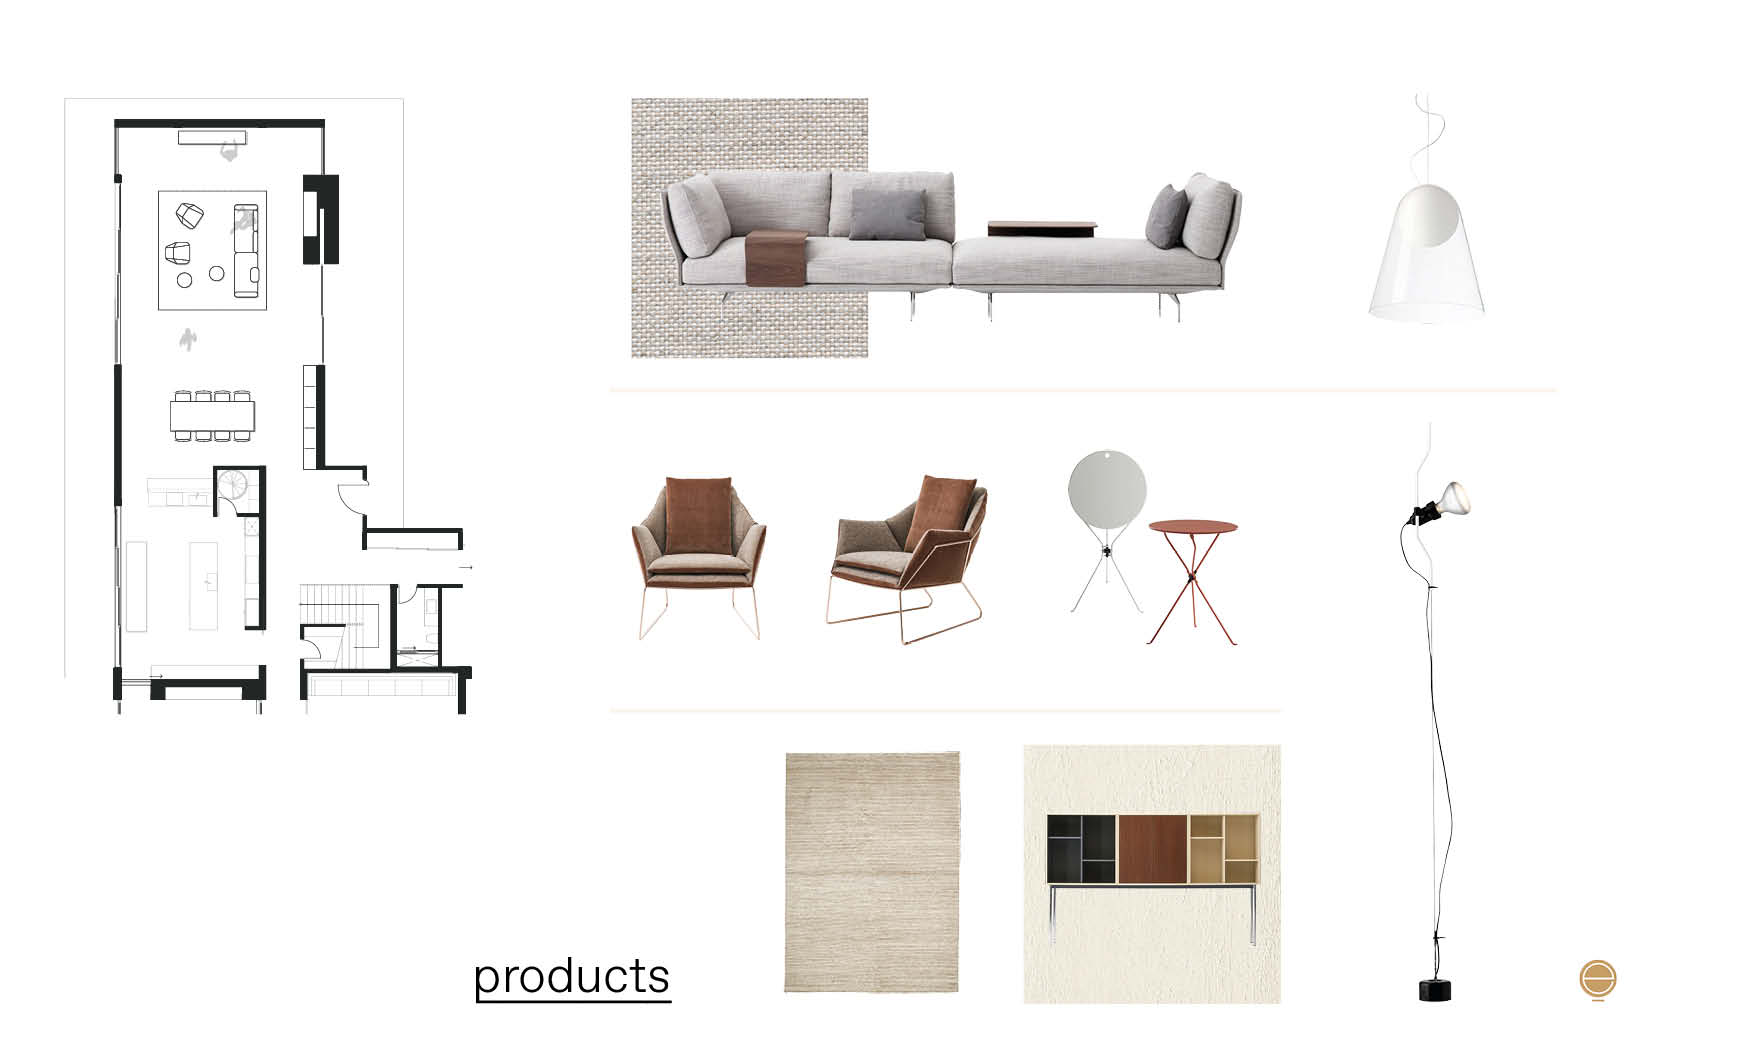 modern Italian living room furniture moodboard design by esperiri milano